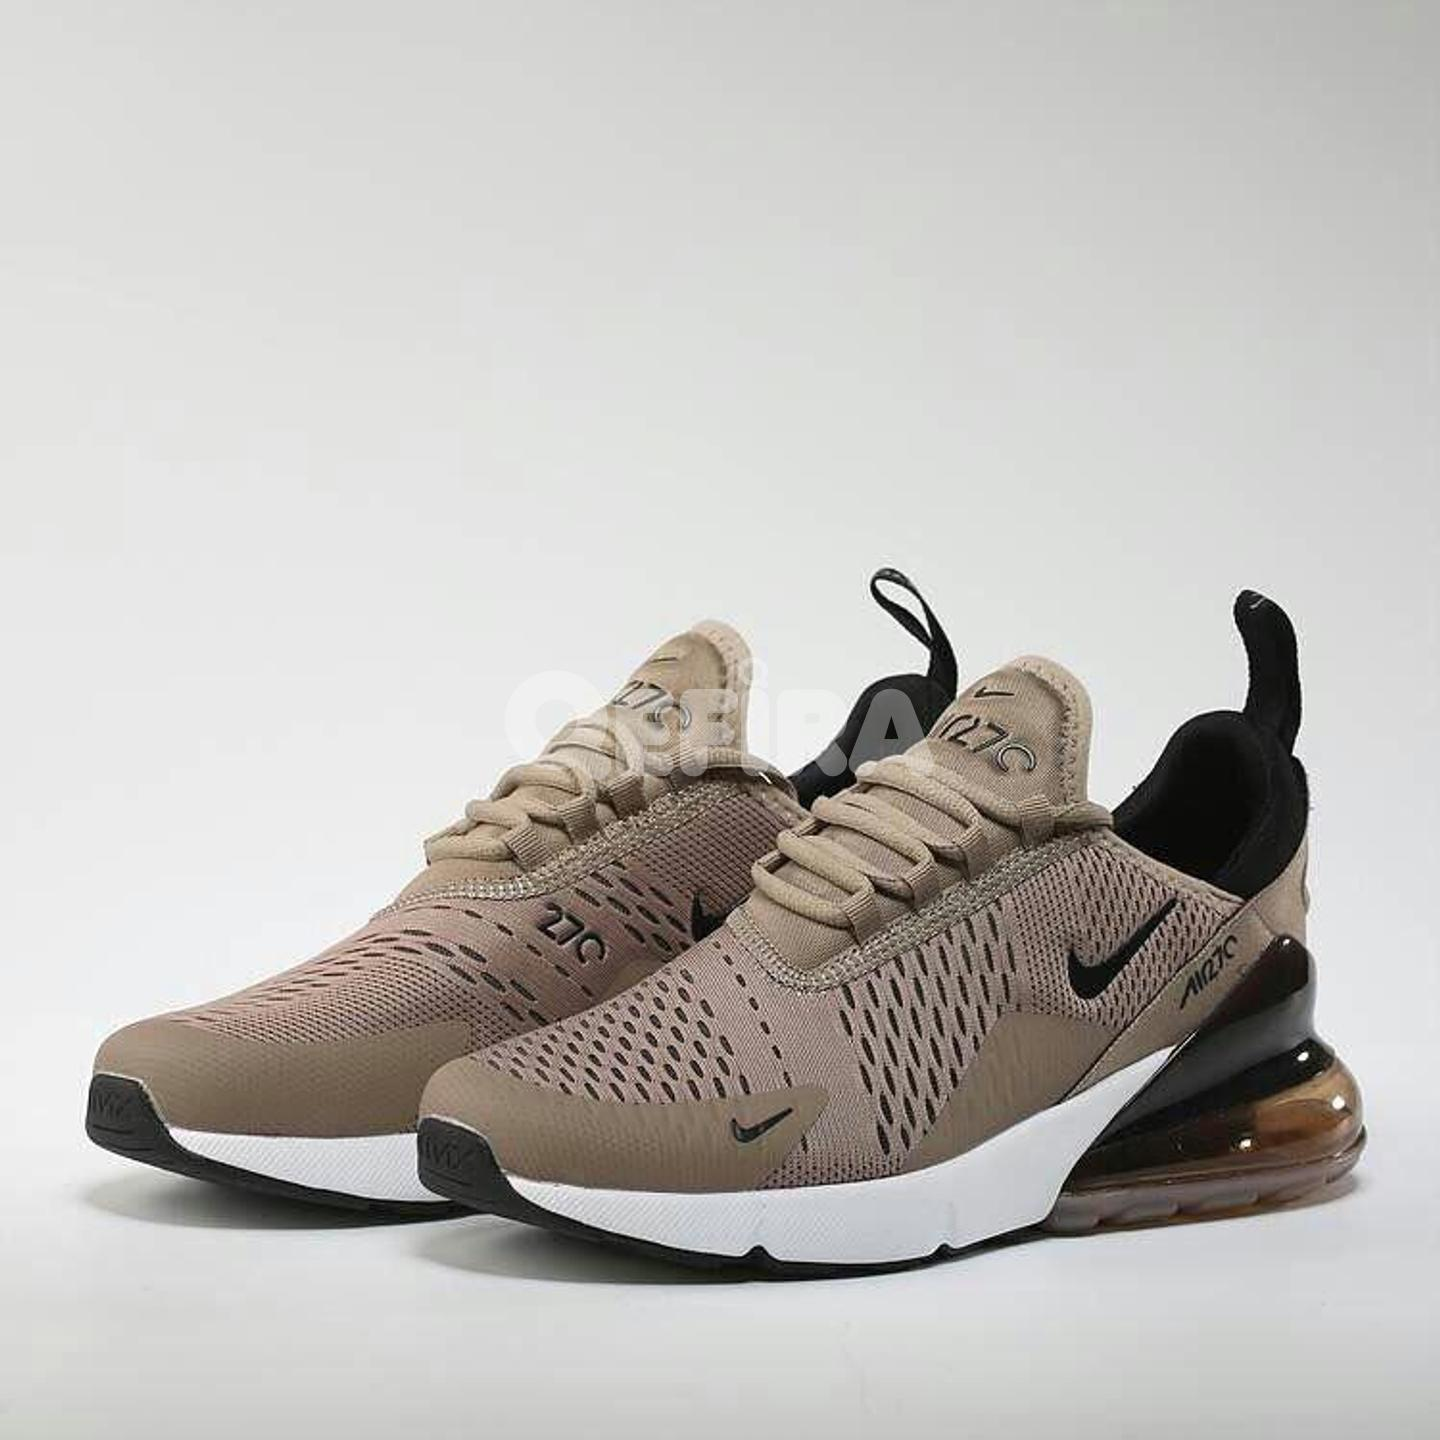 sports shoes detailed images better Original Nike Air 27c Shoe